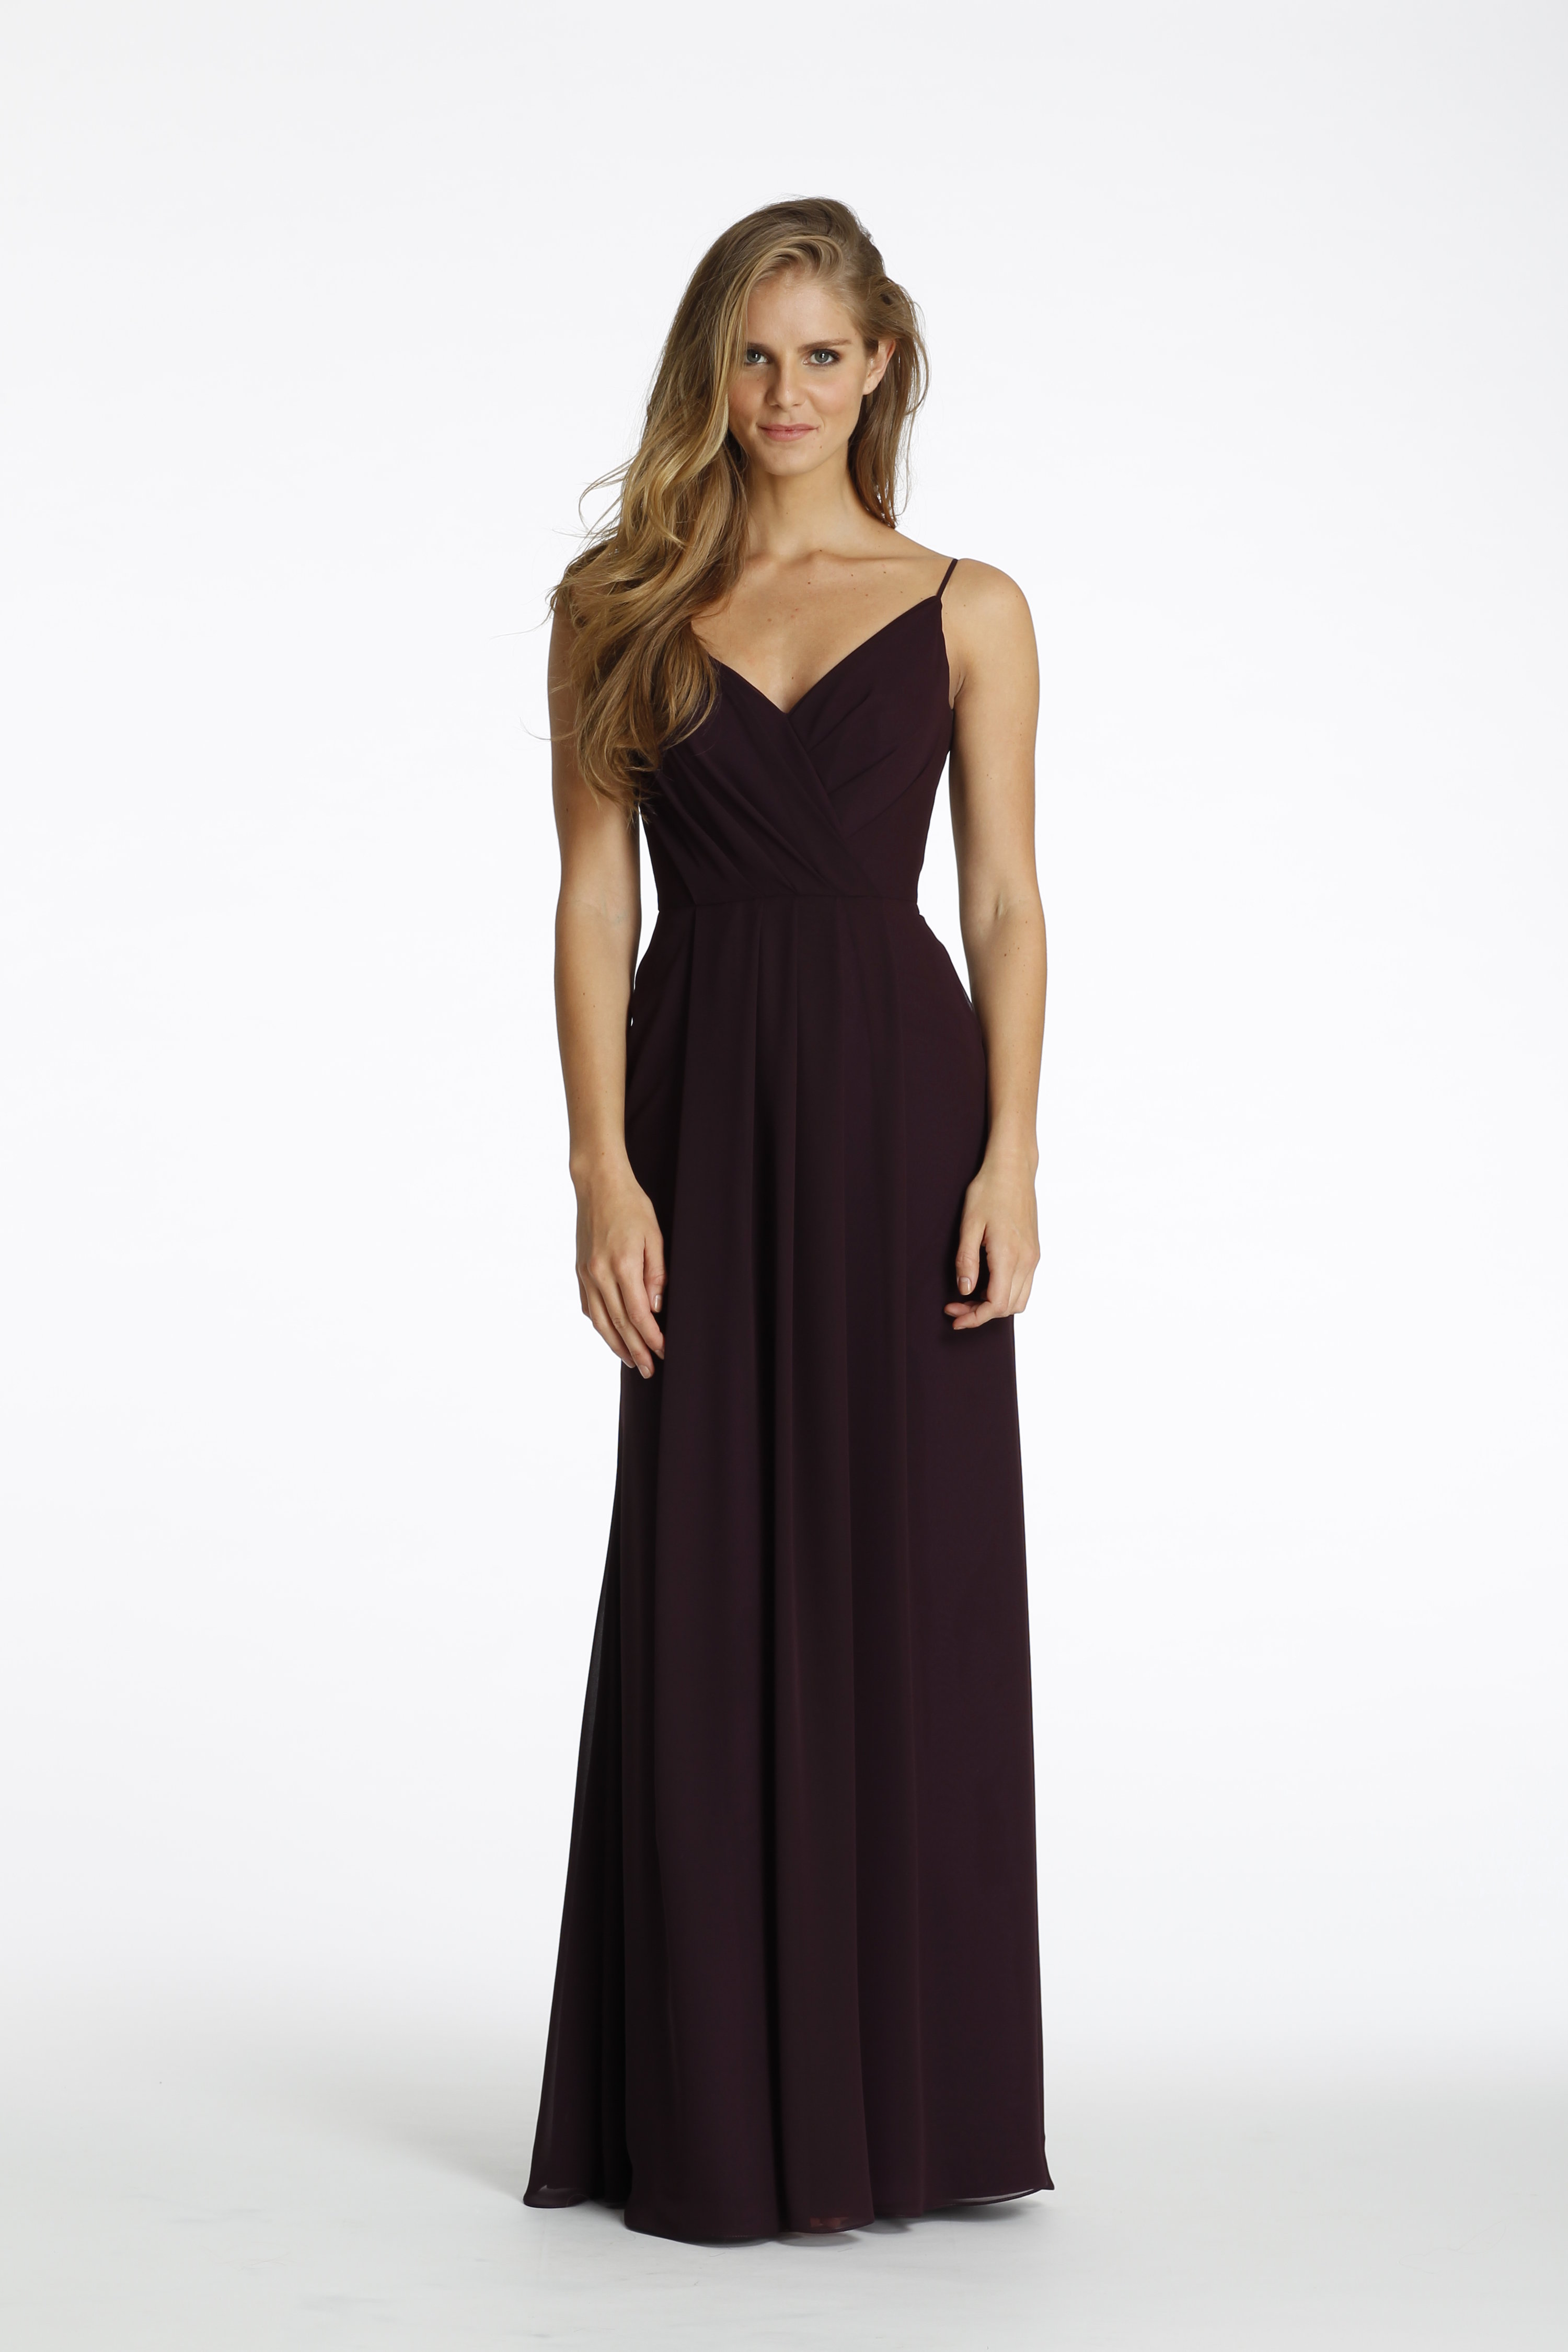 Bridesmaids, Special Occasion Dresses and Bridal Party Gowns by JLM ...